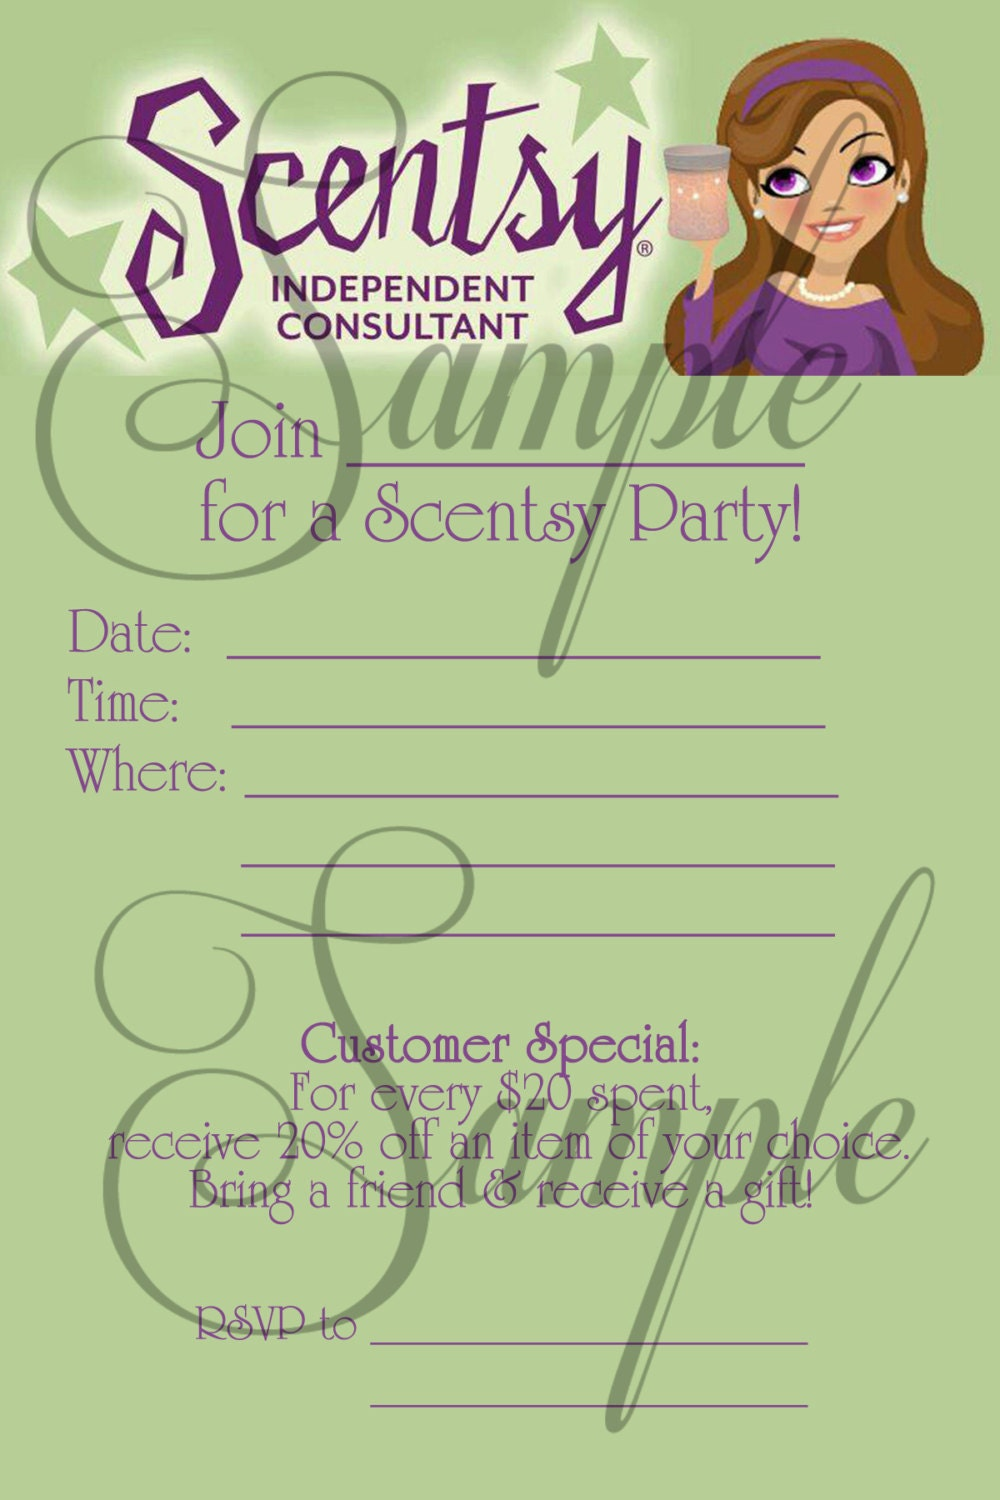 Scentsy Party Invitation – Scentsy Party Invitations